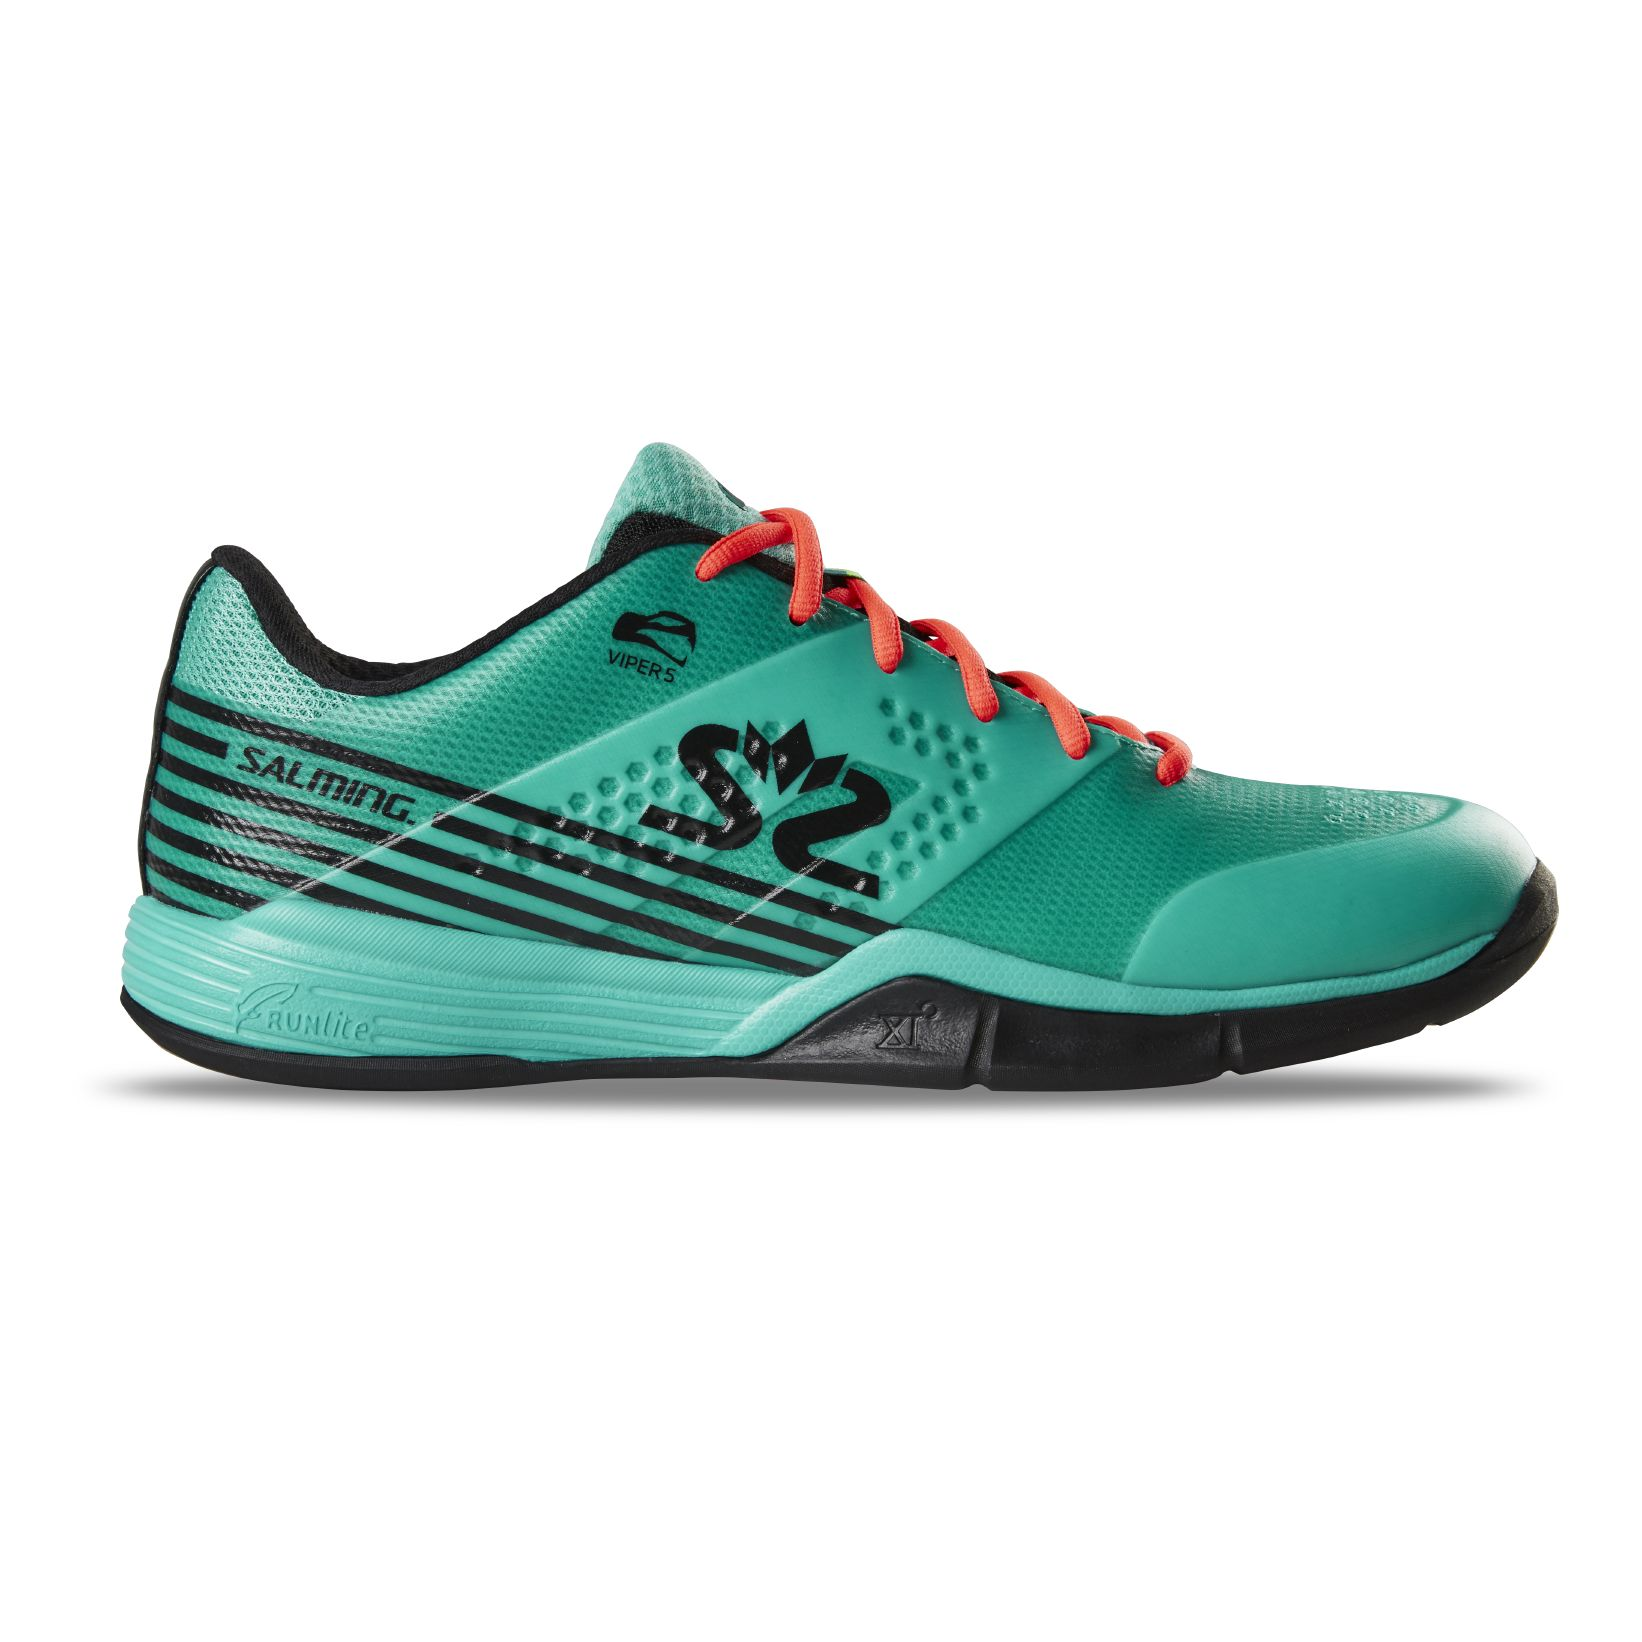 Salming Viper 5 Shoe Men Turquoise/Black 12 UK - 48 EUR - 31 cm